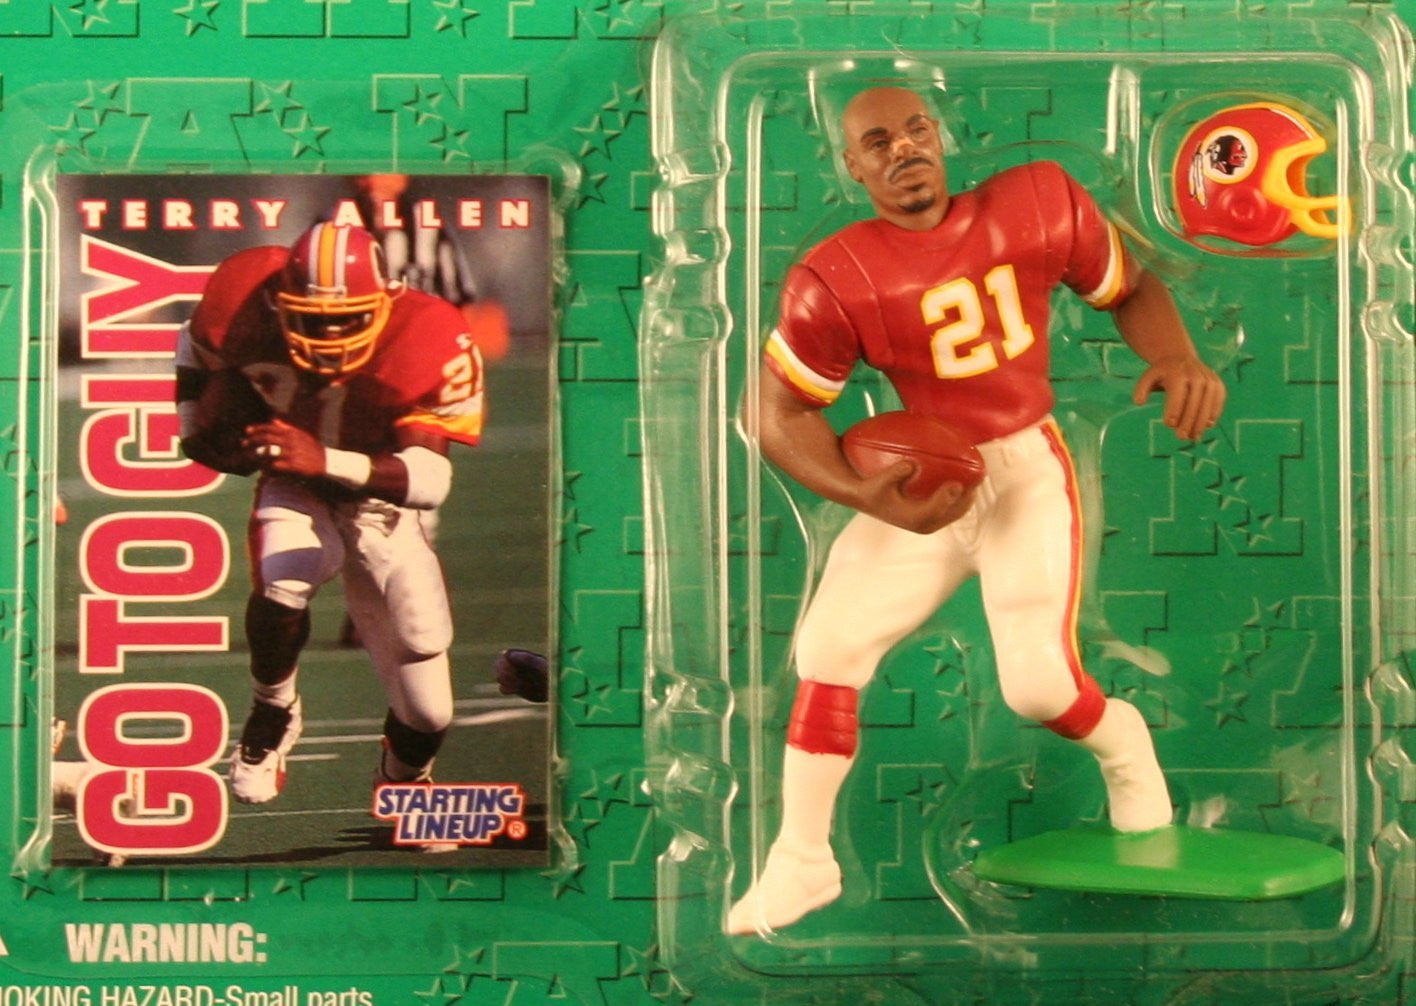 TERRY ALLEN / WASHINGTON REDSKINS 1996 NFL Starting Lineup Action Figure & Exclusive NFL Collector Trading Card